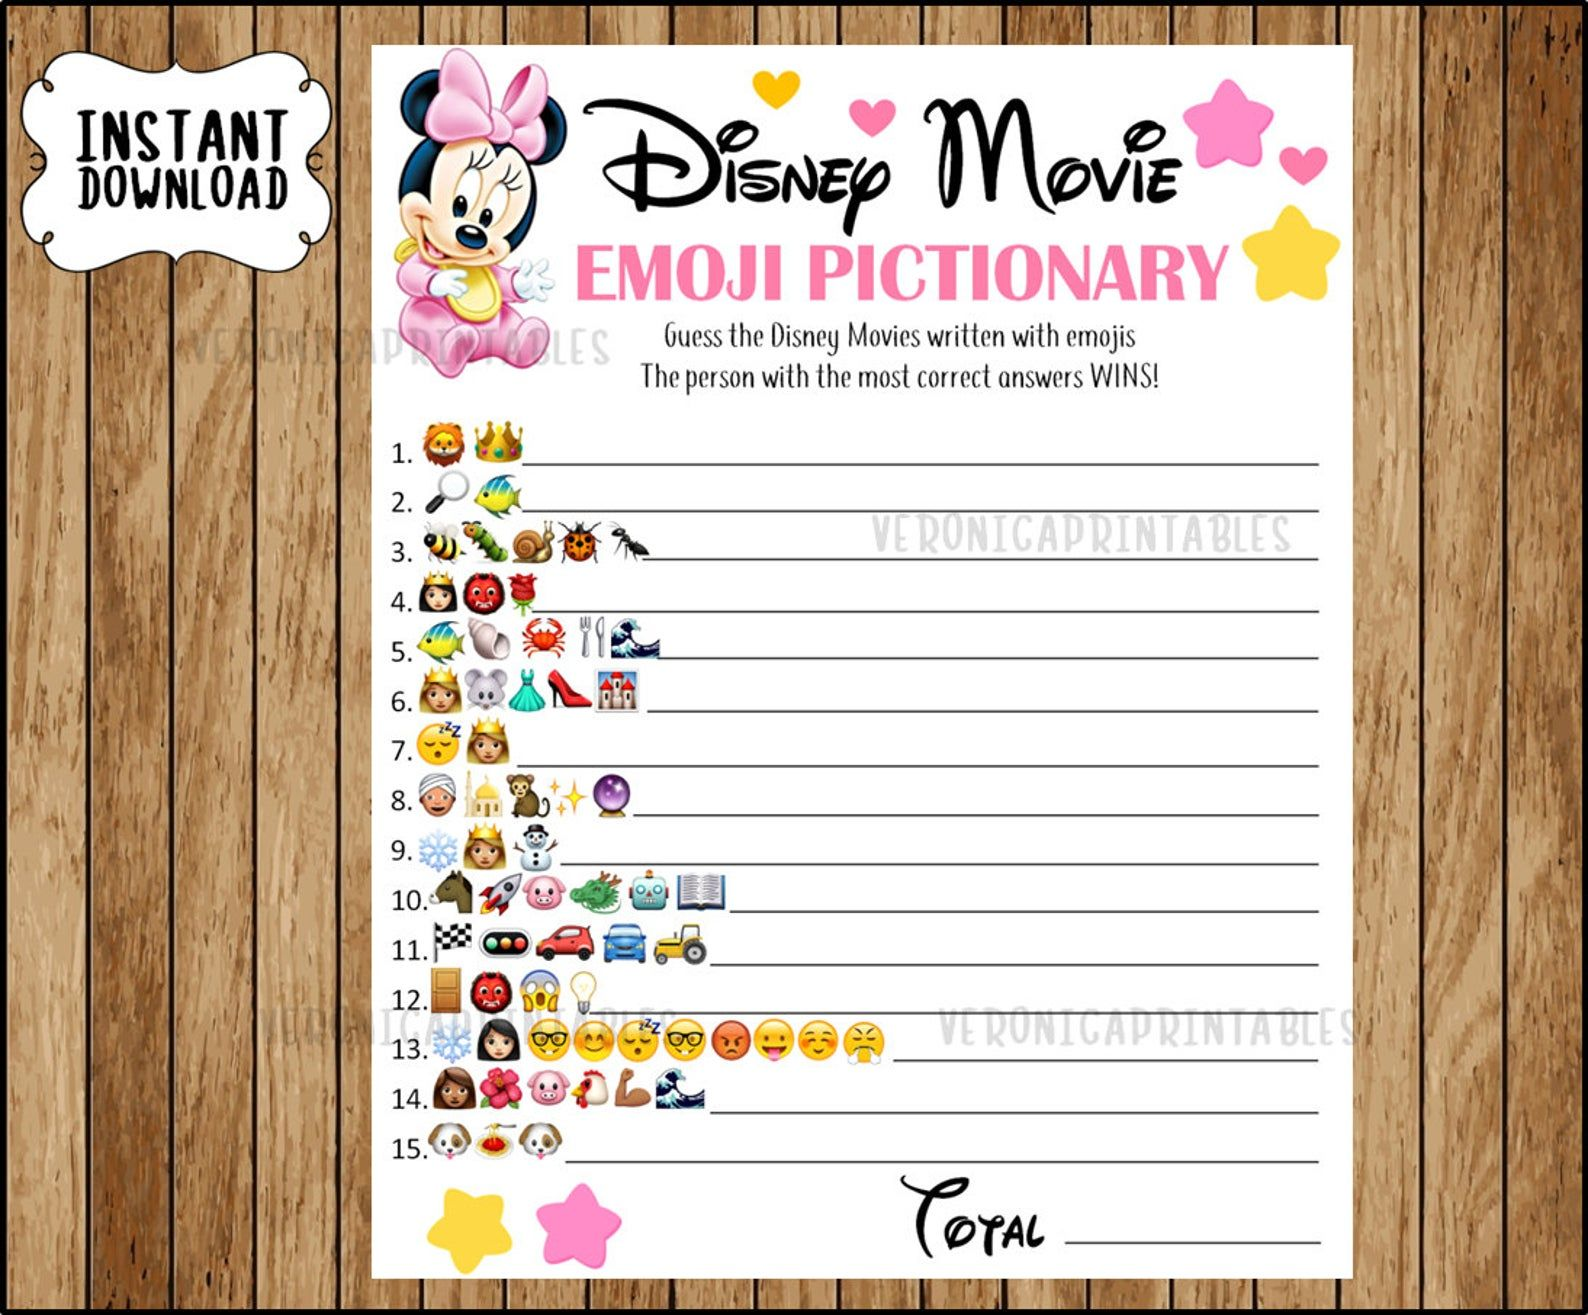 Disney Movie EMOJI Pictionary Baby Shower Game, Minnie Baby theme, ANSWERS included, Instant Download